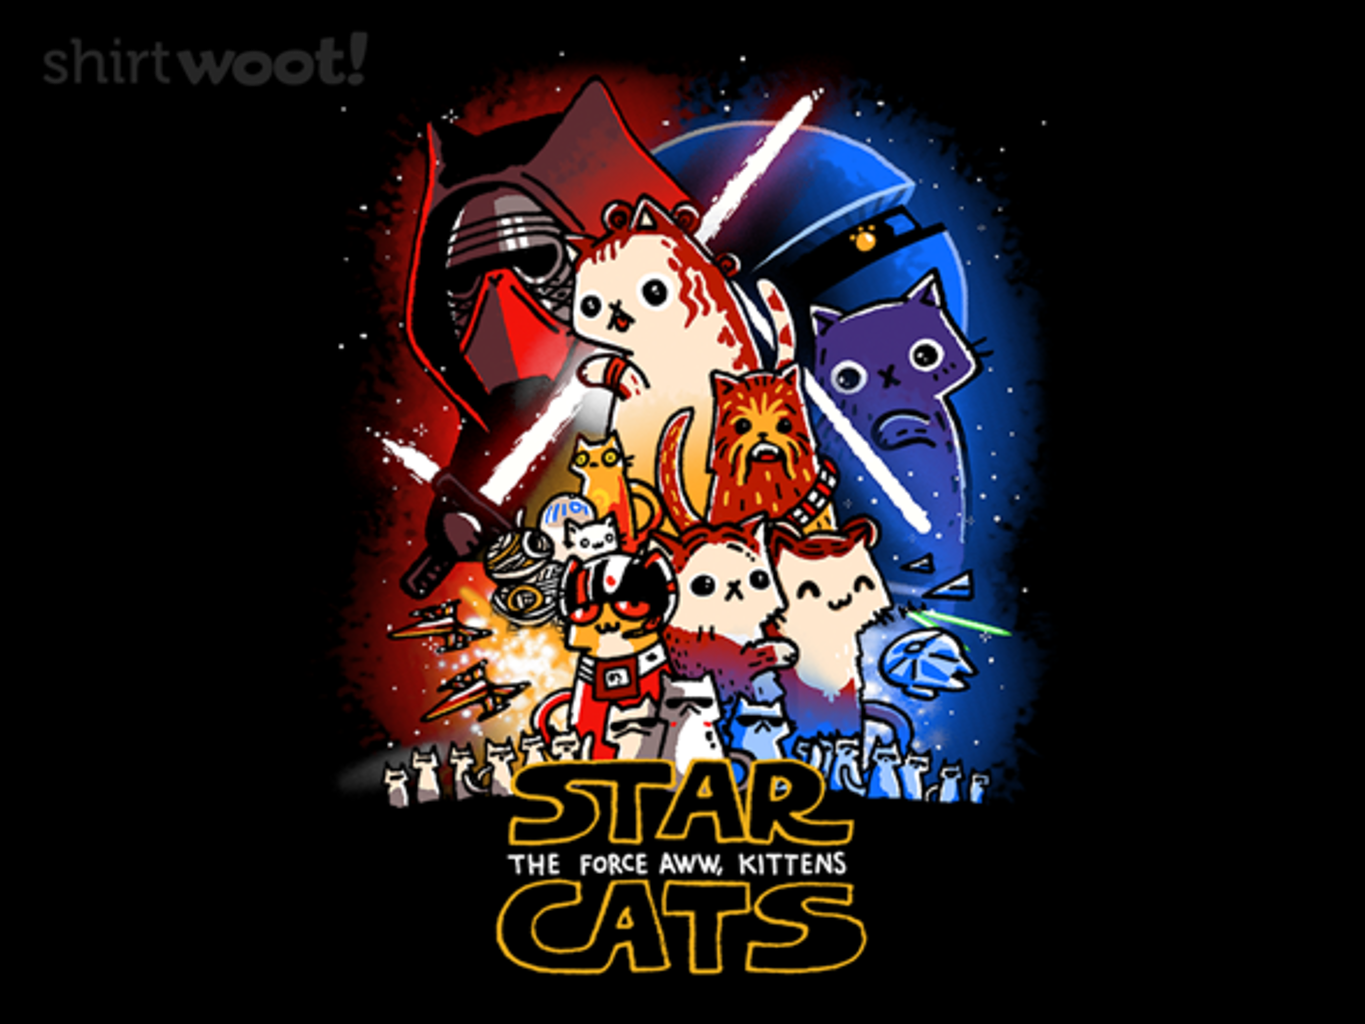 Woot!: Star Cats: The Force Aww, Kittens